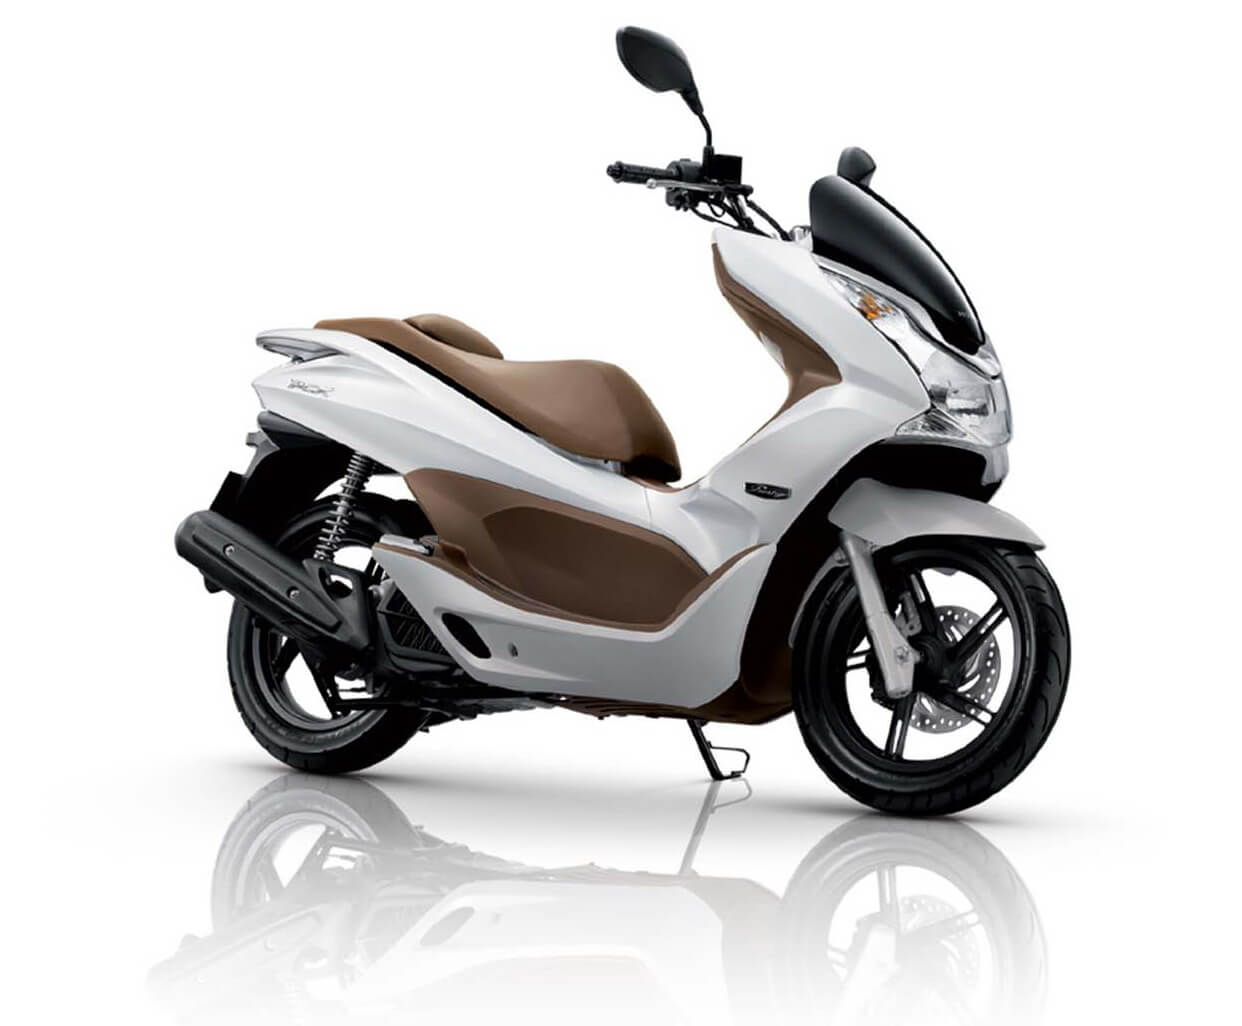 honda pcx price in india pcx mileage images specifications. Black Bedroom Furniture Sets. Home Design Ideas